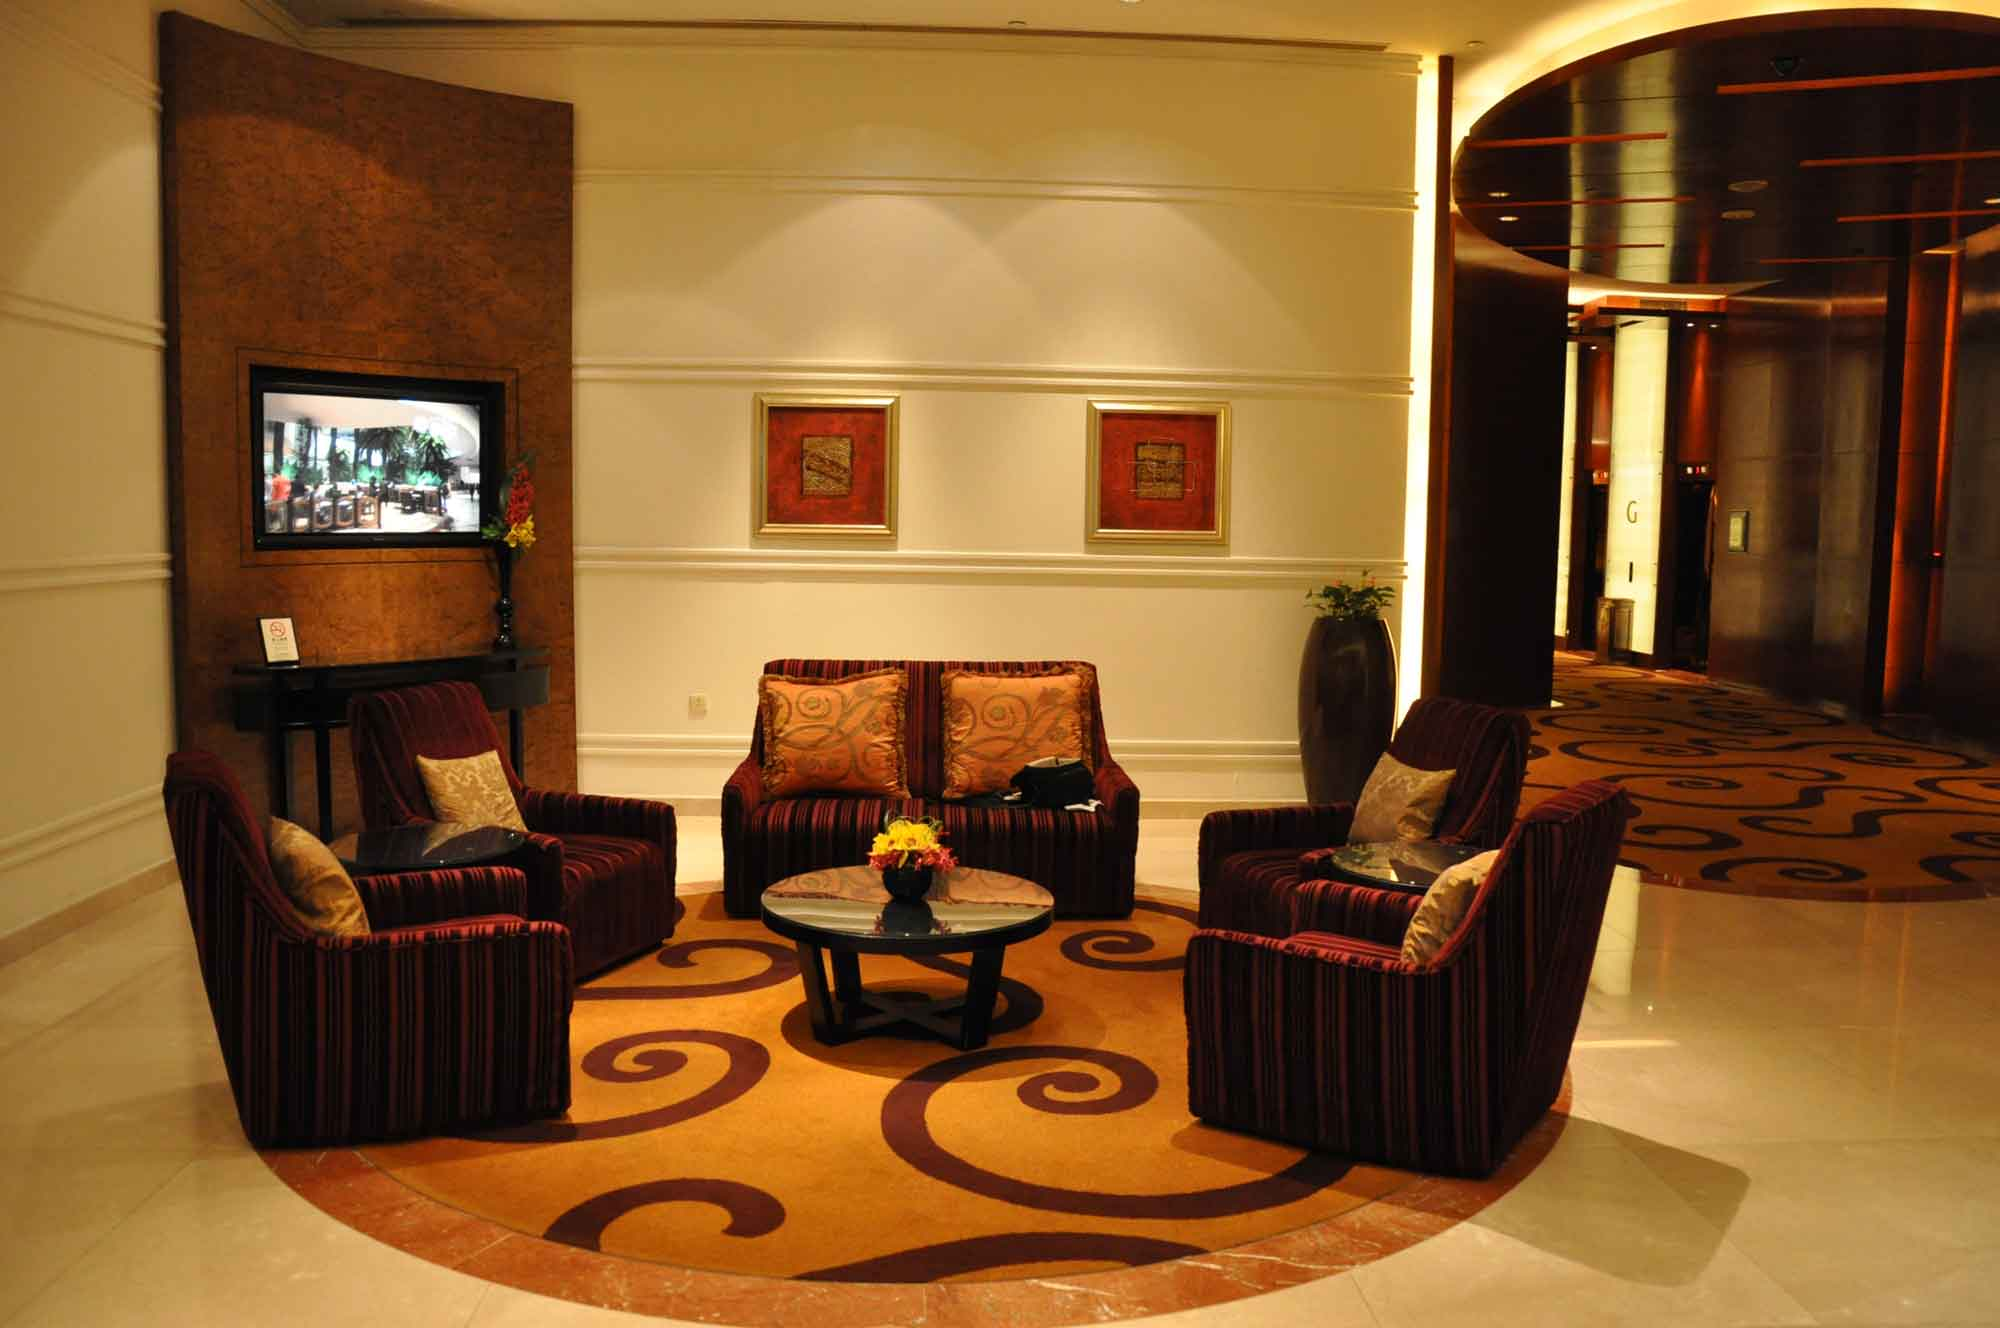 Sands Macao lobby chairs